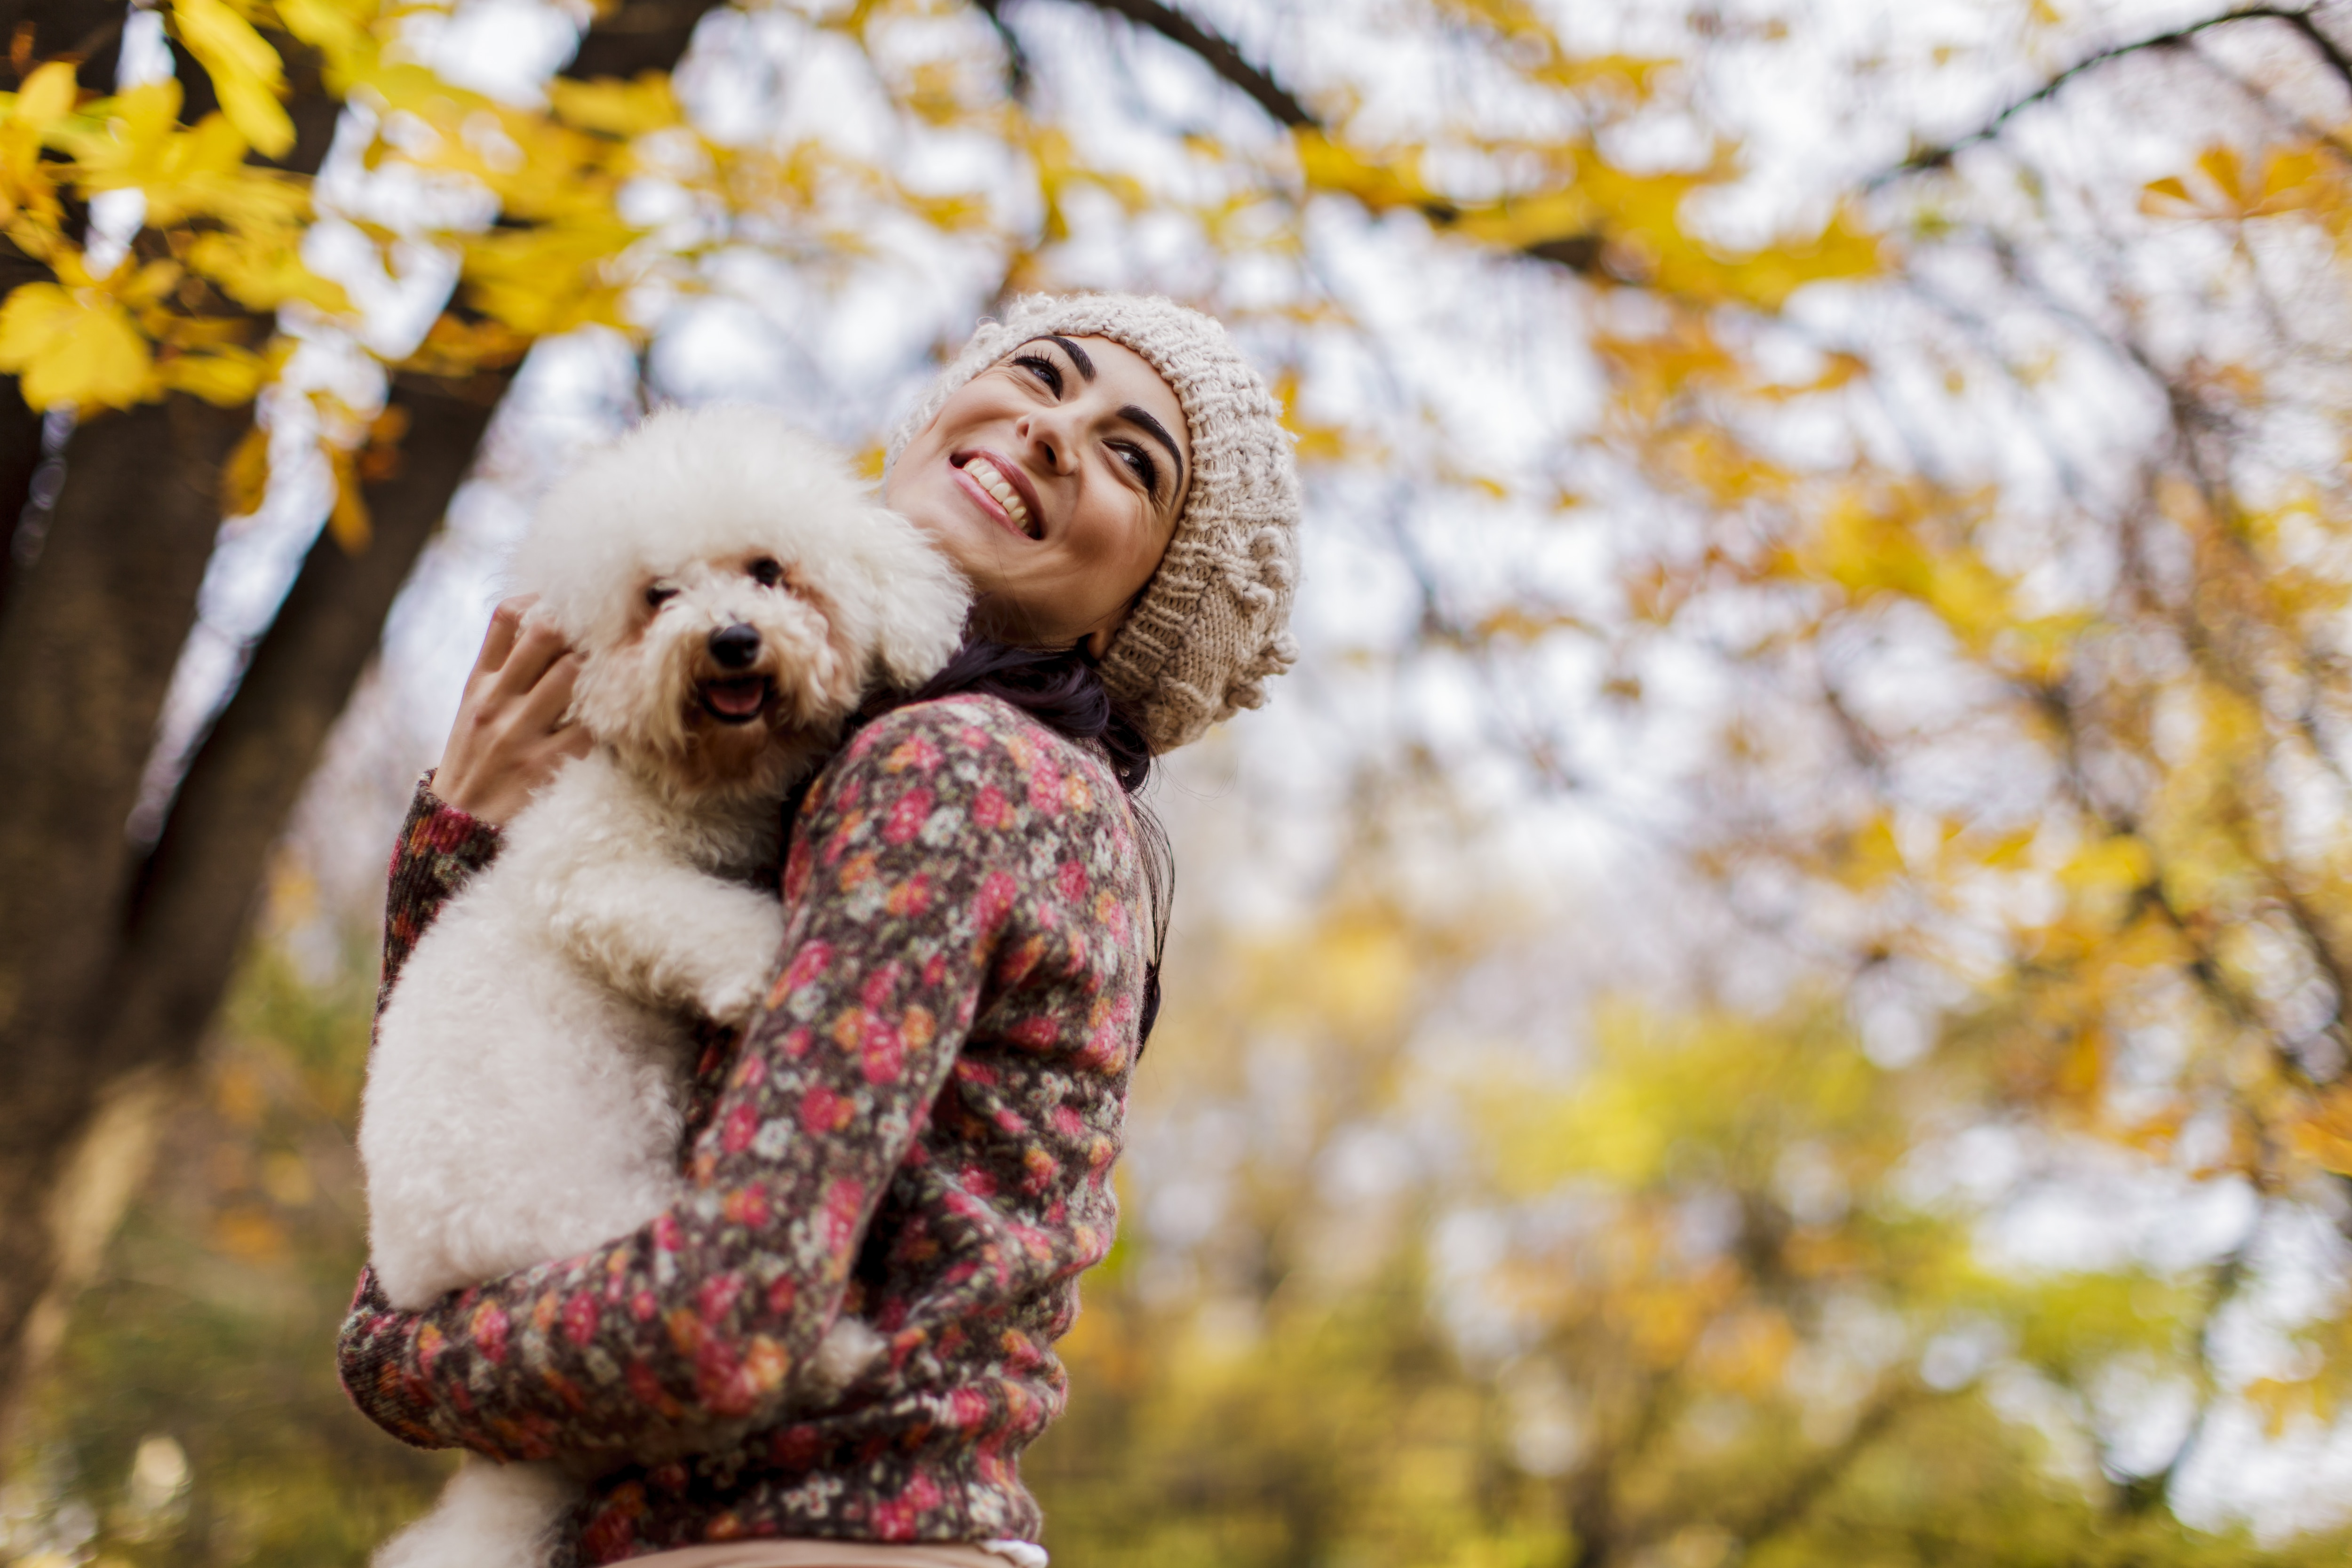 Brunette woman in knitted beanie and flowered shirt holds a shaggy dog with fall trees in background.